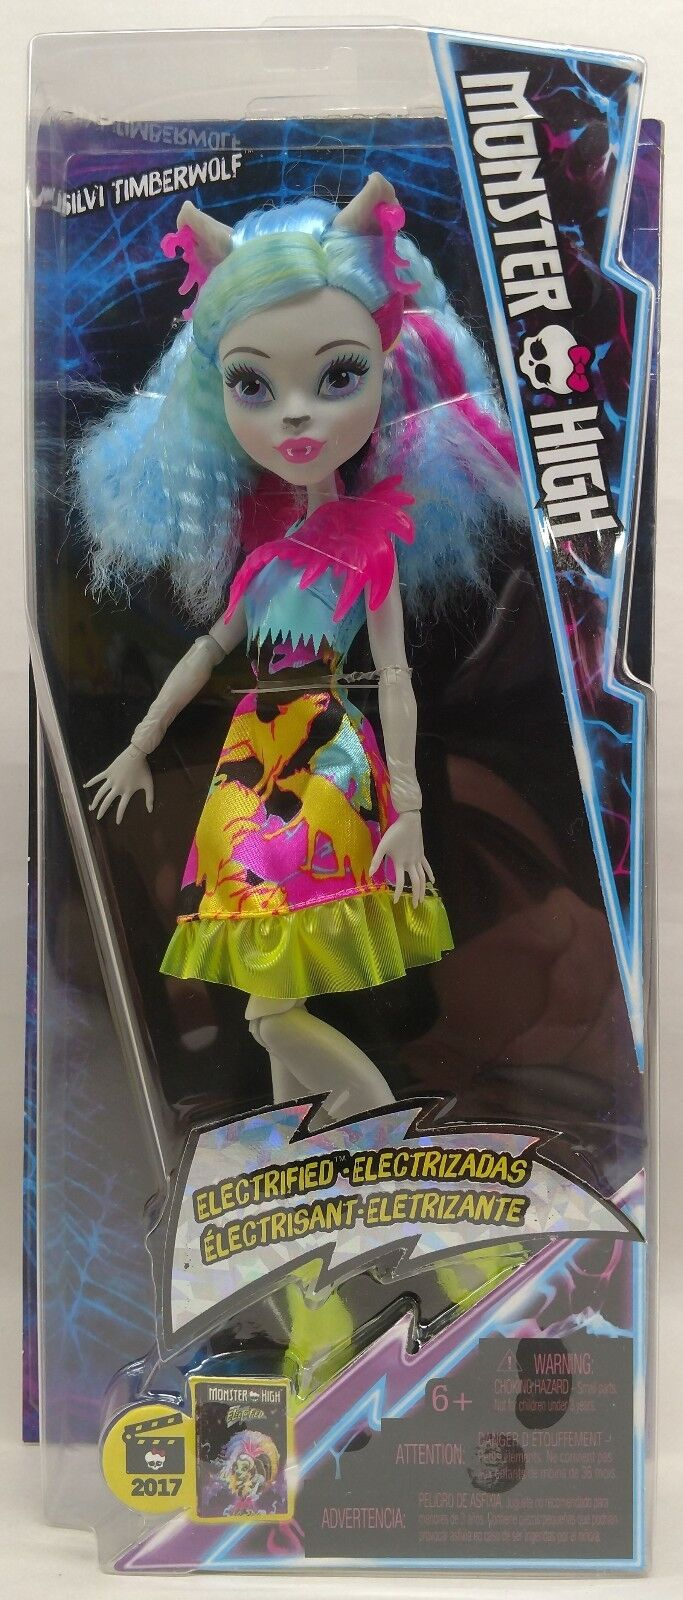 Monster High Electrified Hair-Raising Ghouls Silvi Timberwolf Doll